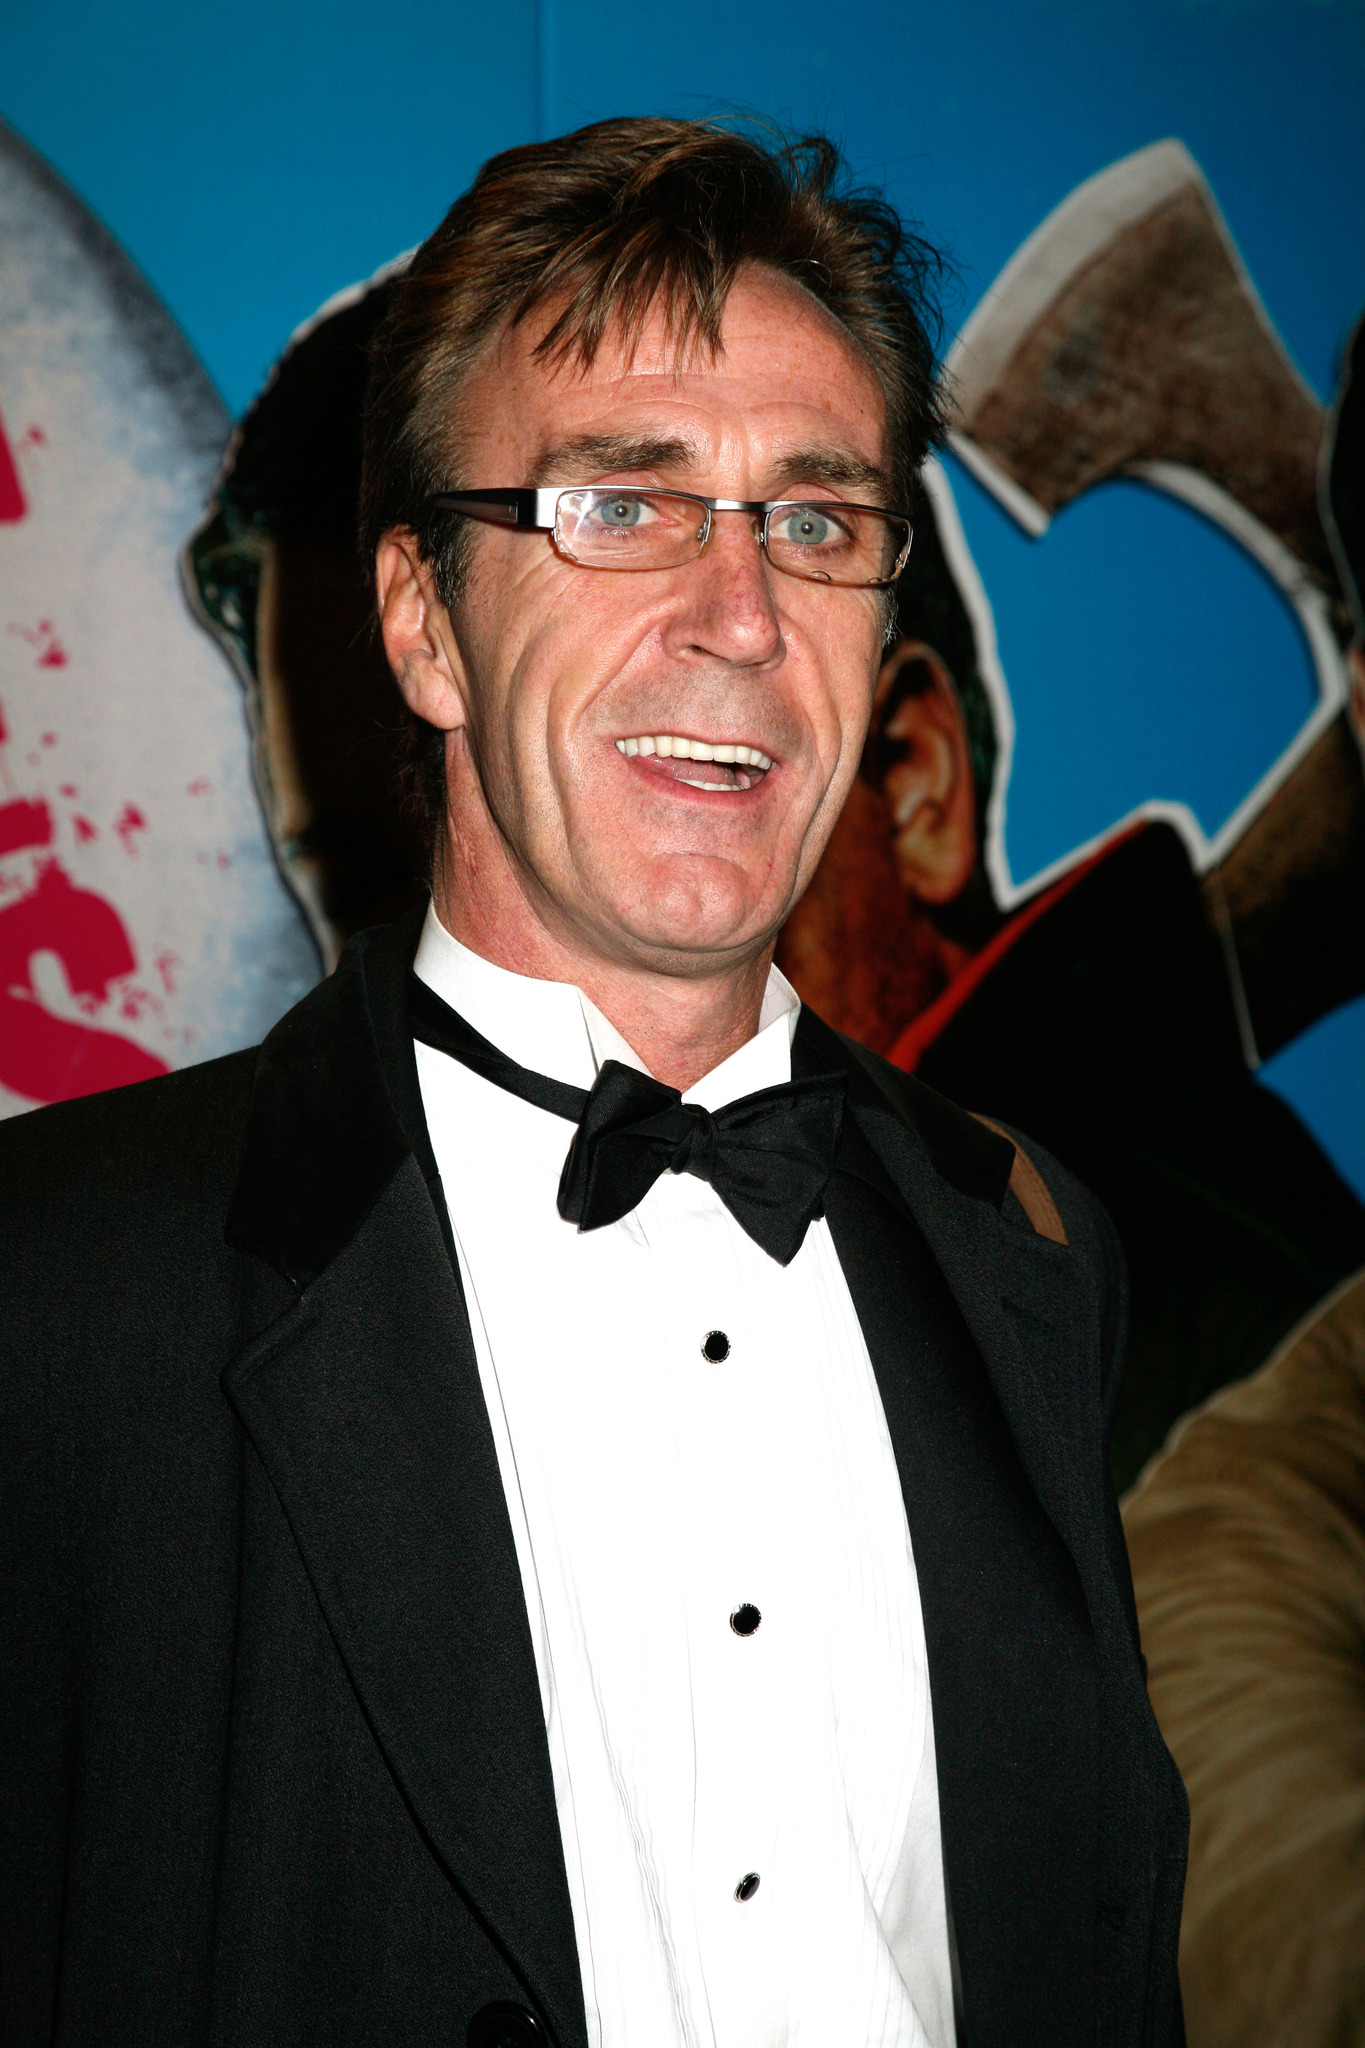 Joe McGann (born 1958)